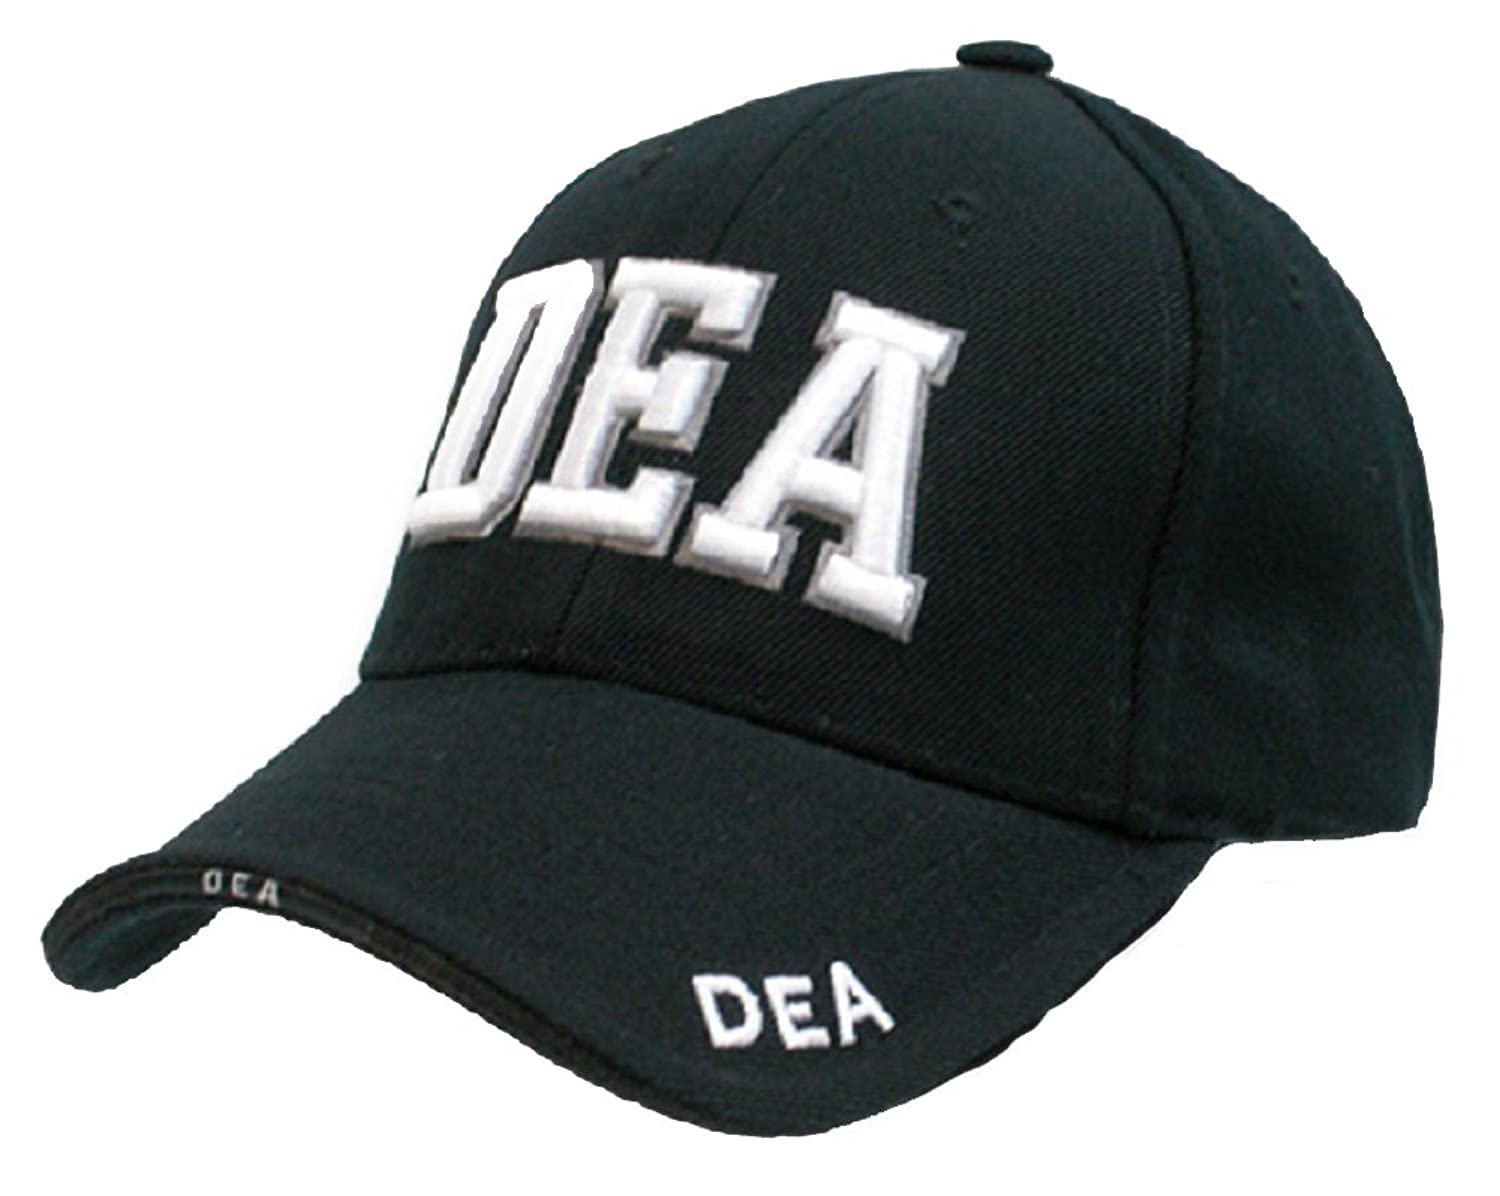 DEA - Law Enforcement - Baseball Cap / Hat Adjustable BLACK with 3D Embroidery family law gender